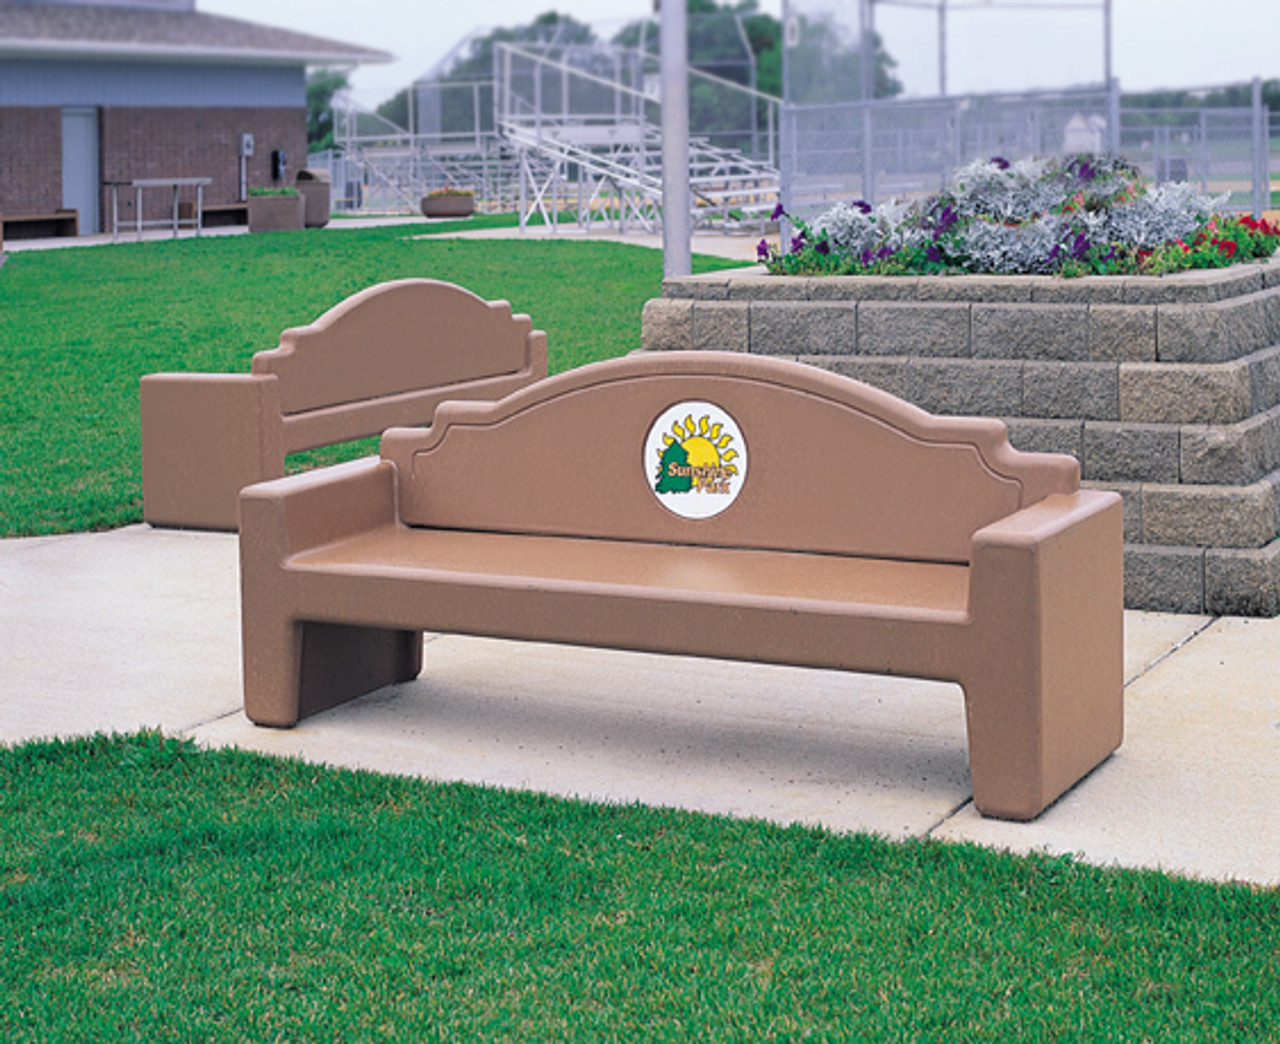 Surprising 7 Foot Custom Logo Outdoor Stone Park Bench With Back Cltf5065 Frankydiablos Diy Chair Ideas Frankydiabloscom